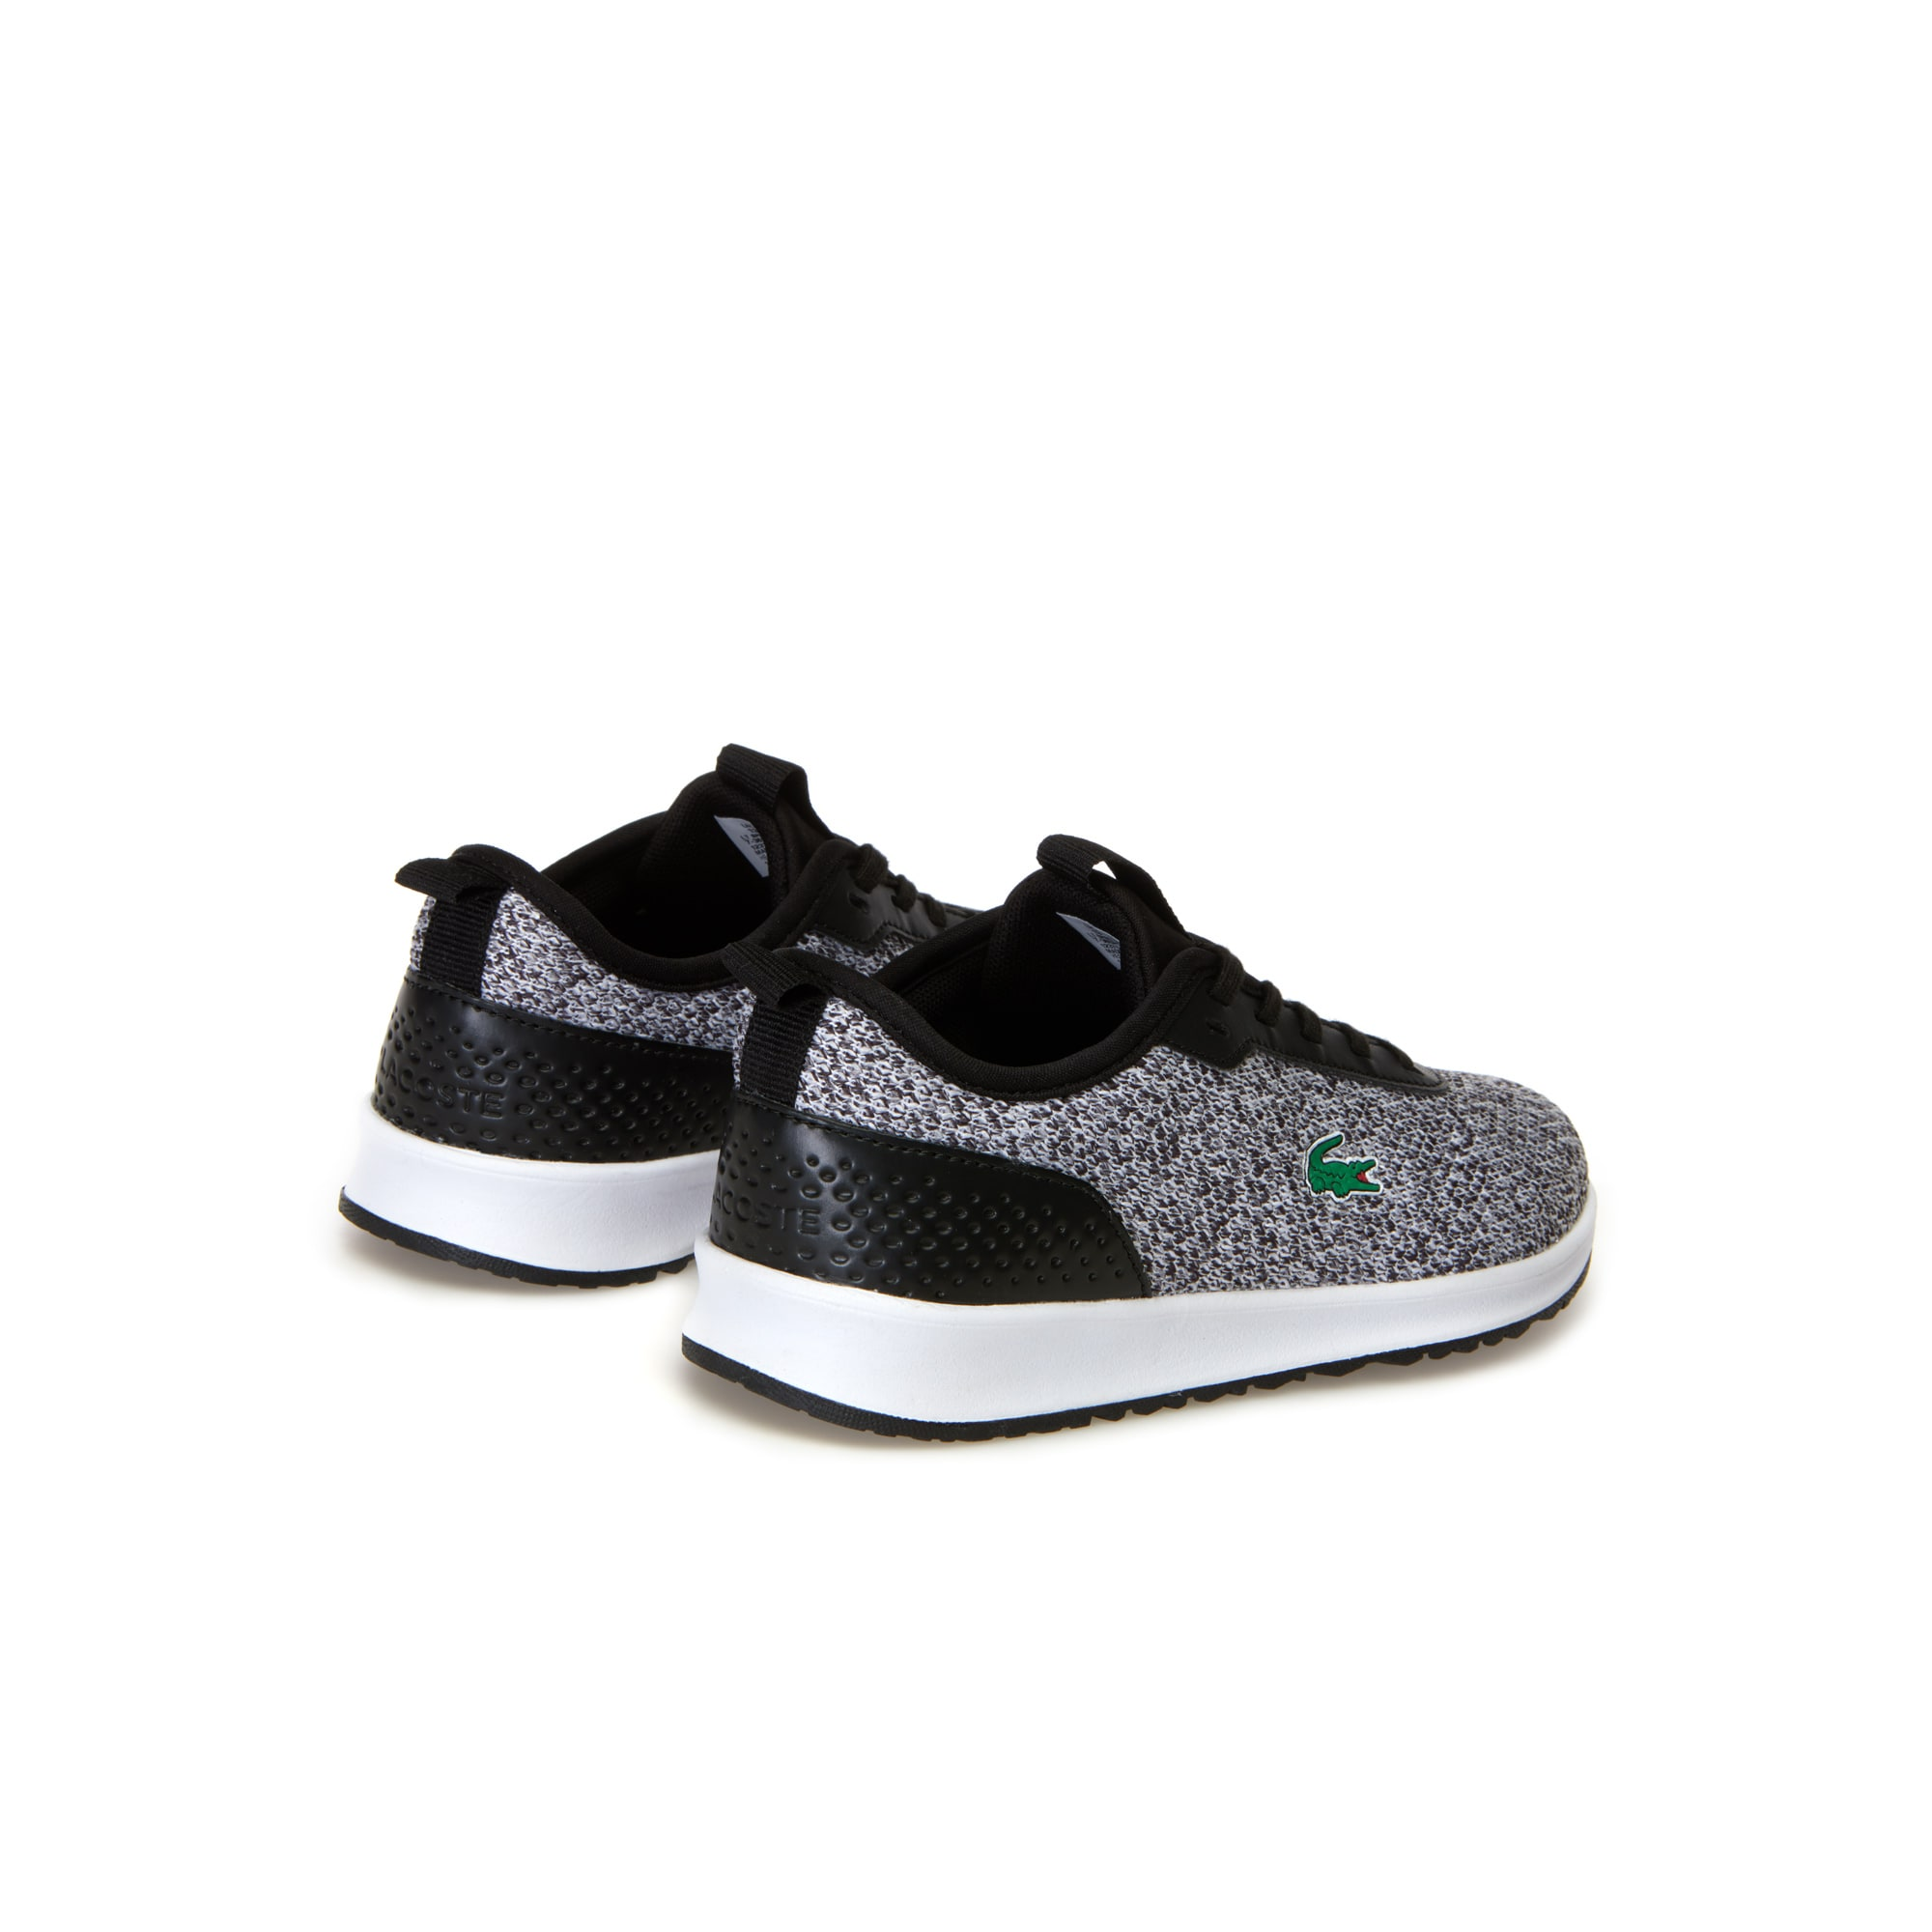 Children's LT Spirit 2.0 Textile Trainers